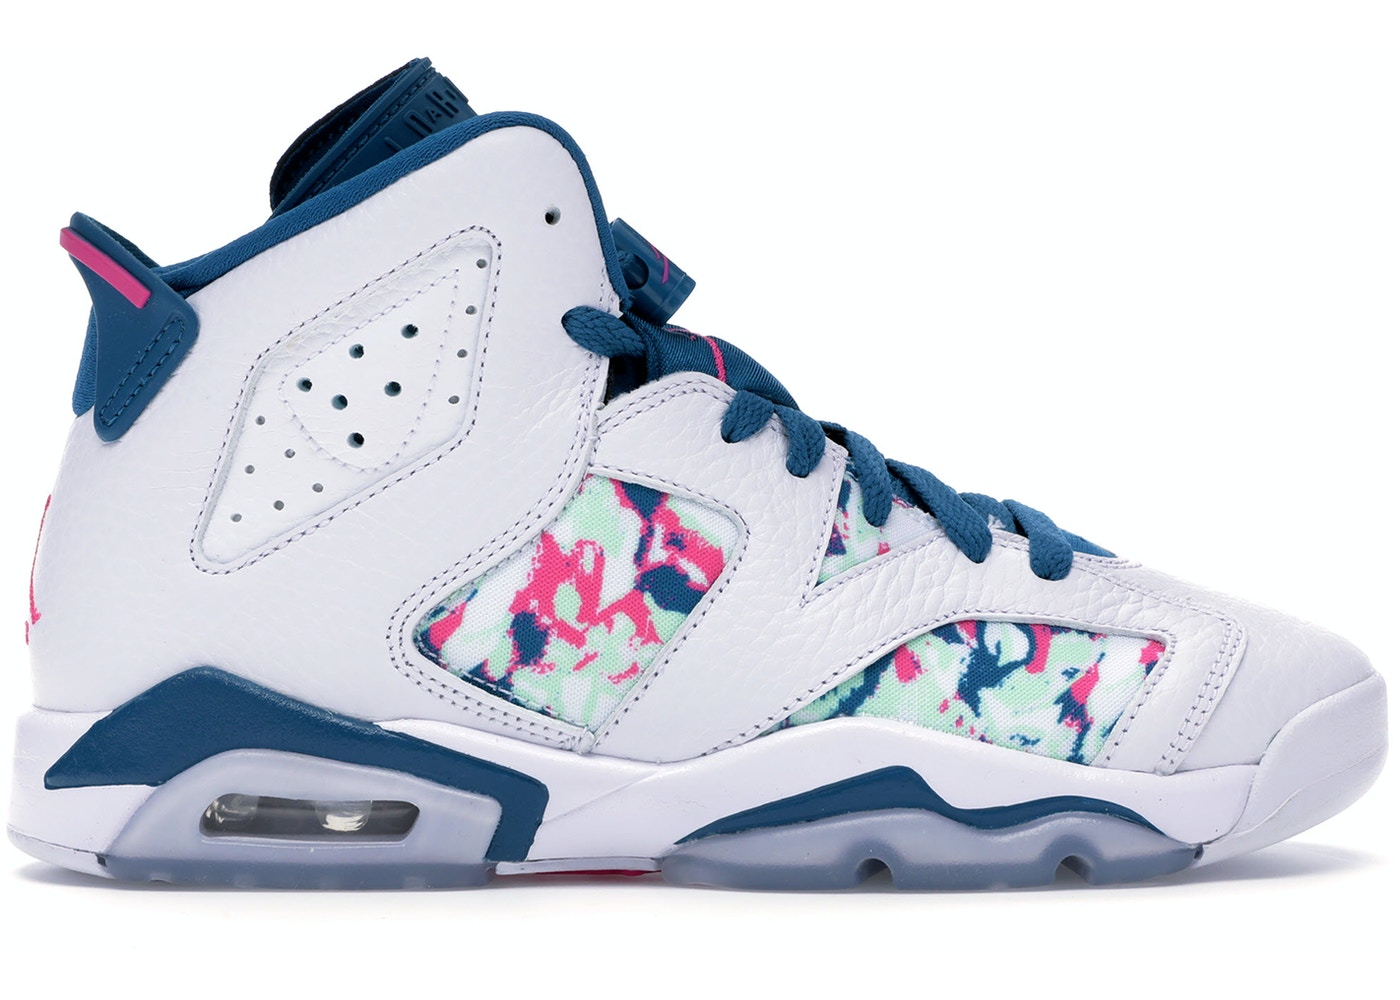 outlet store 81a9c 539bf Buy Air Jordan 6 Shoes & Deadstock Sneakers